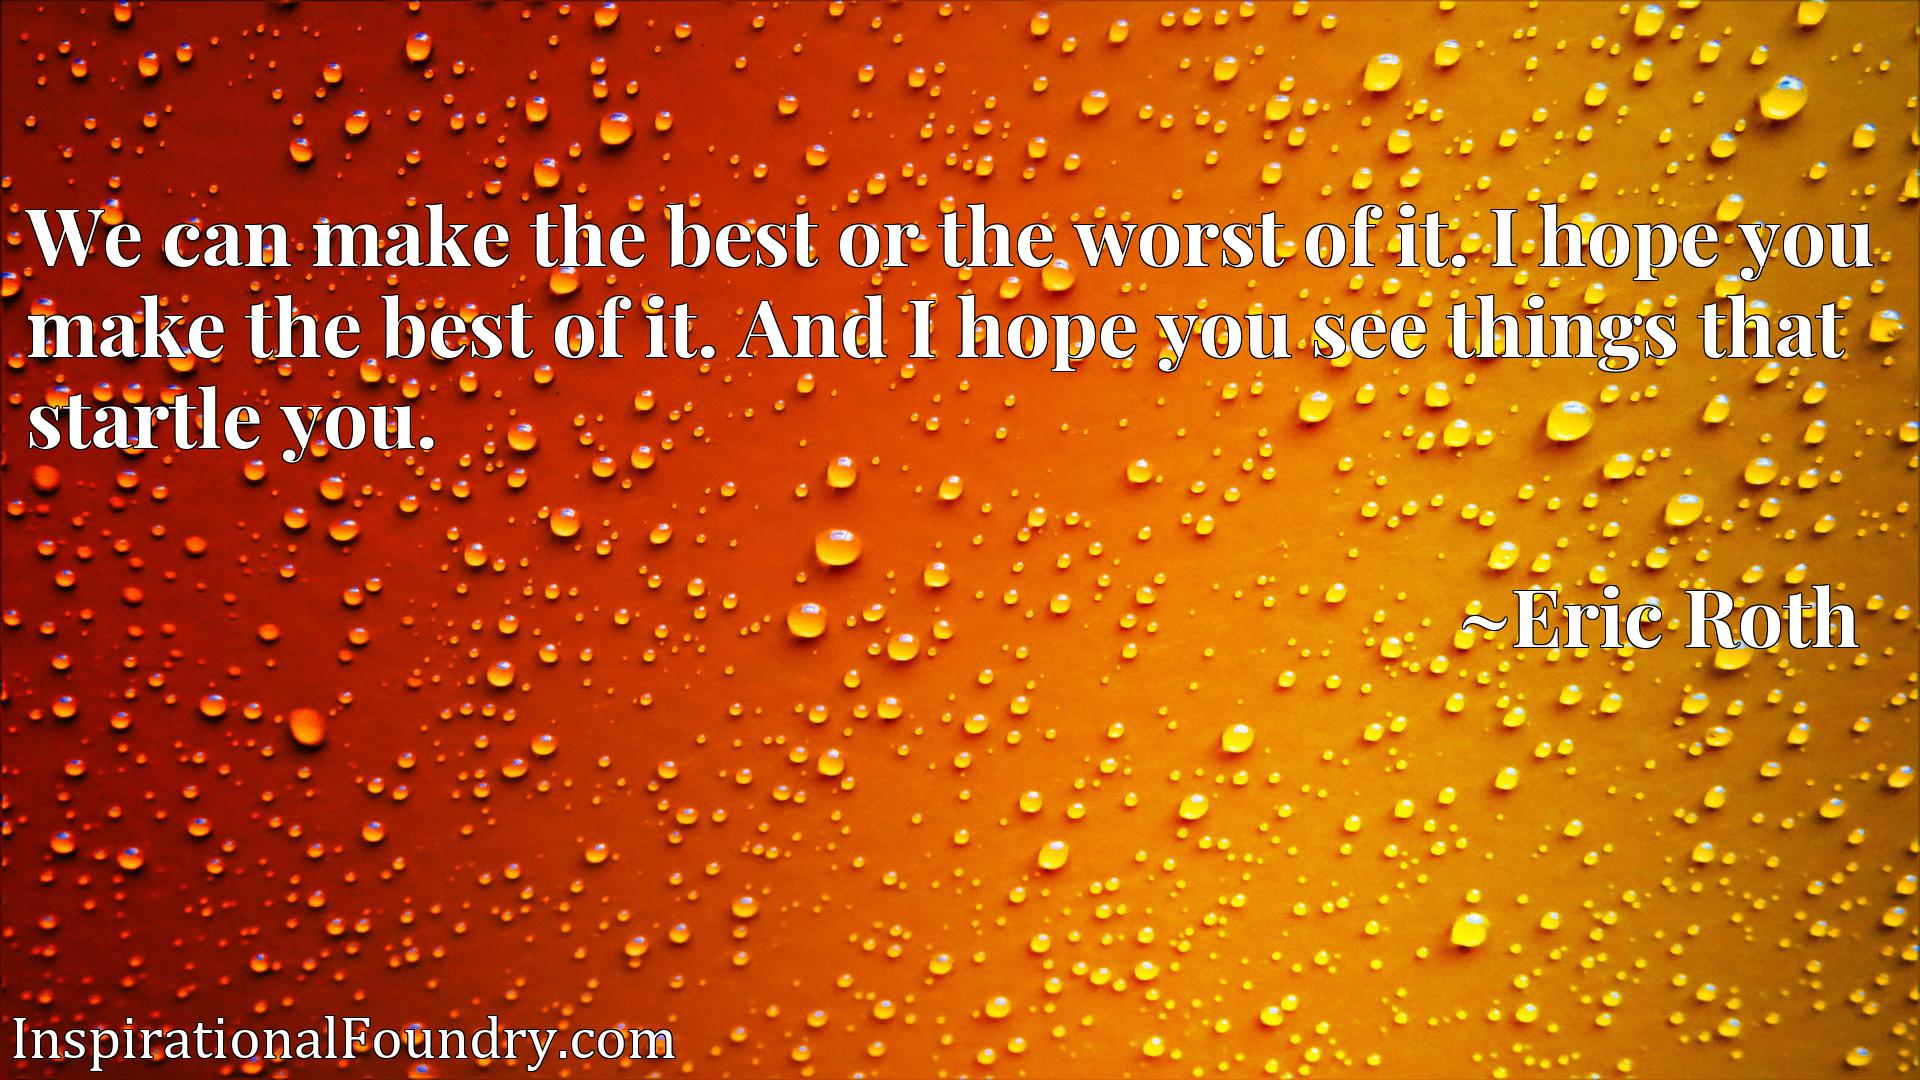 We can make the best or the worst of it. I hope you make the best of it. And I hope you see things that startle you.